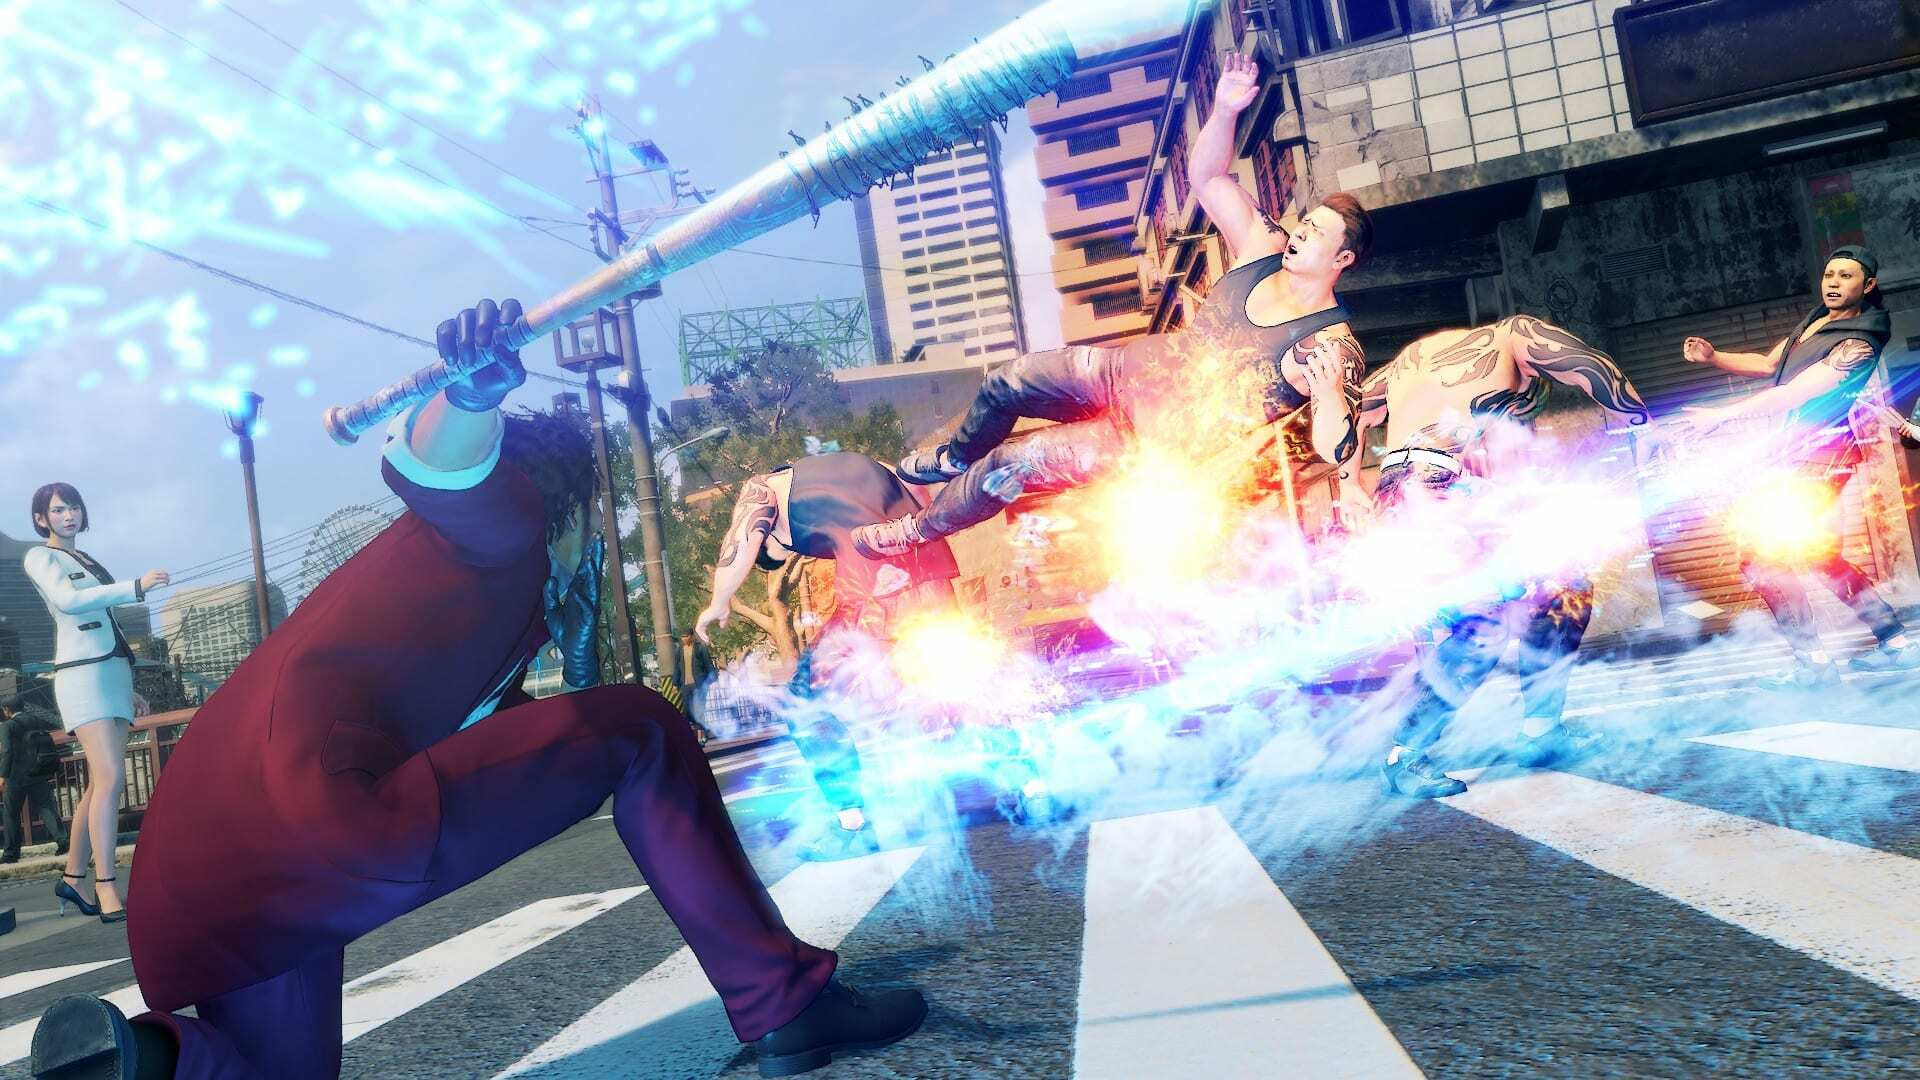 Yakuza 7 Like A Dragon Peaks In Digital Sales In Franchise History Rectify Gamingrectify Gaming